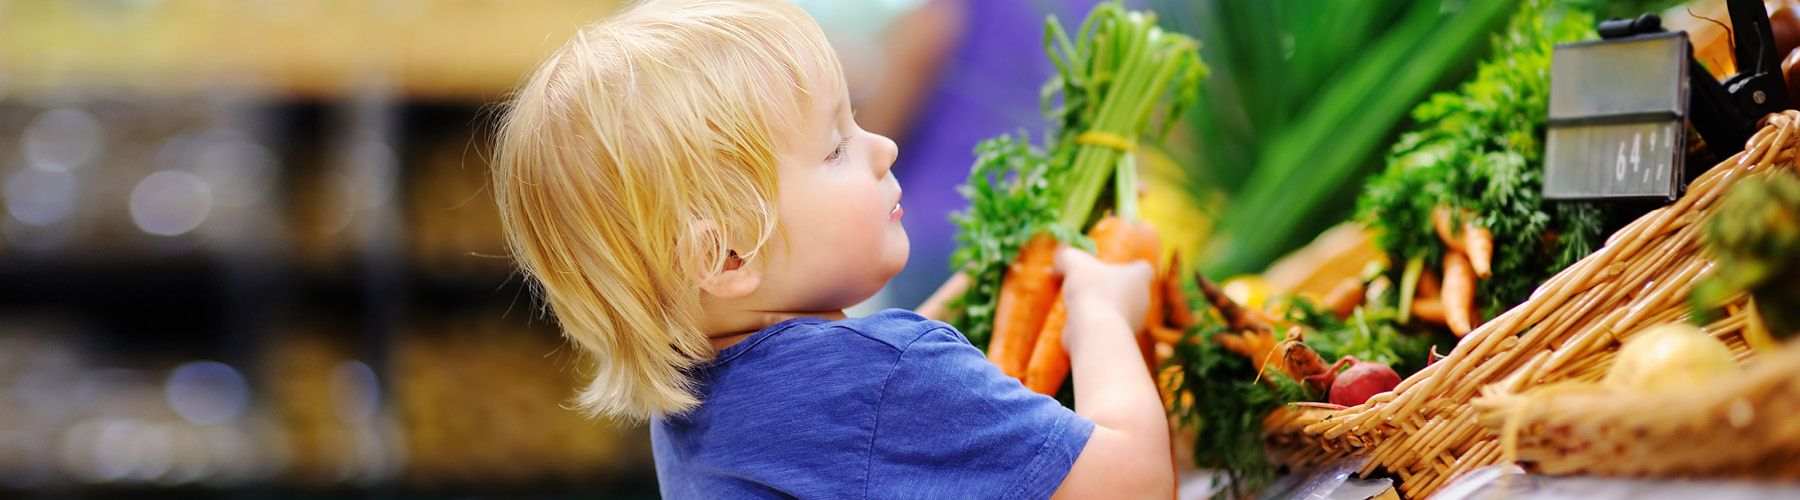 child picking healthy foods